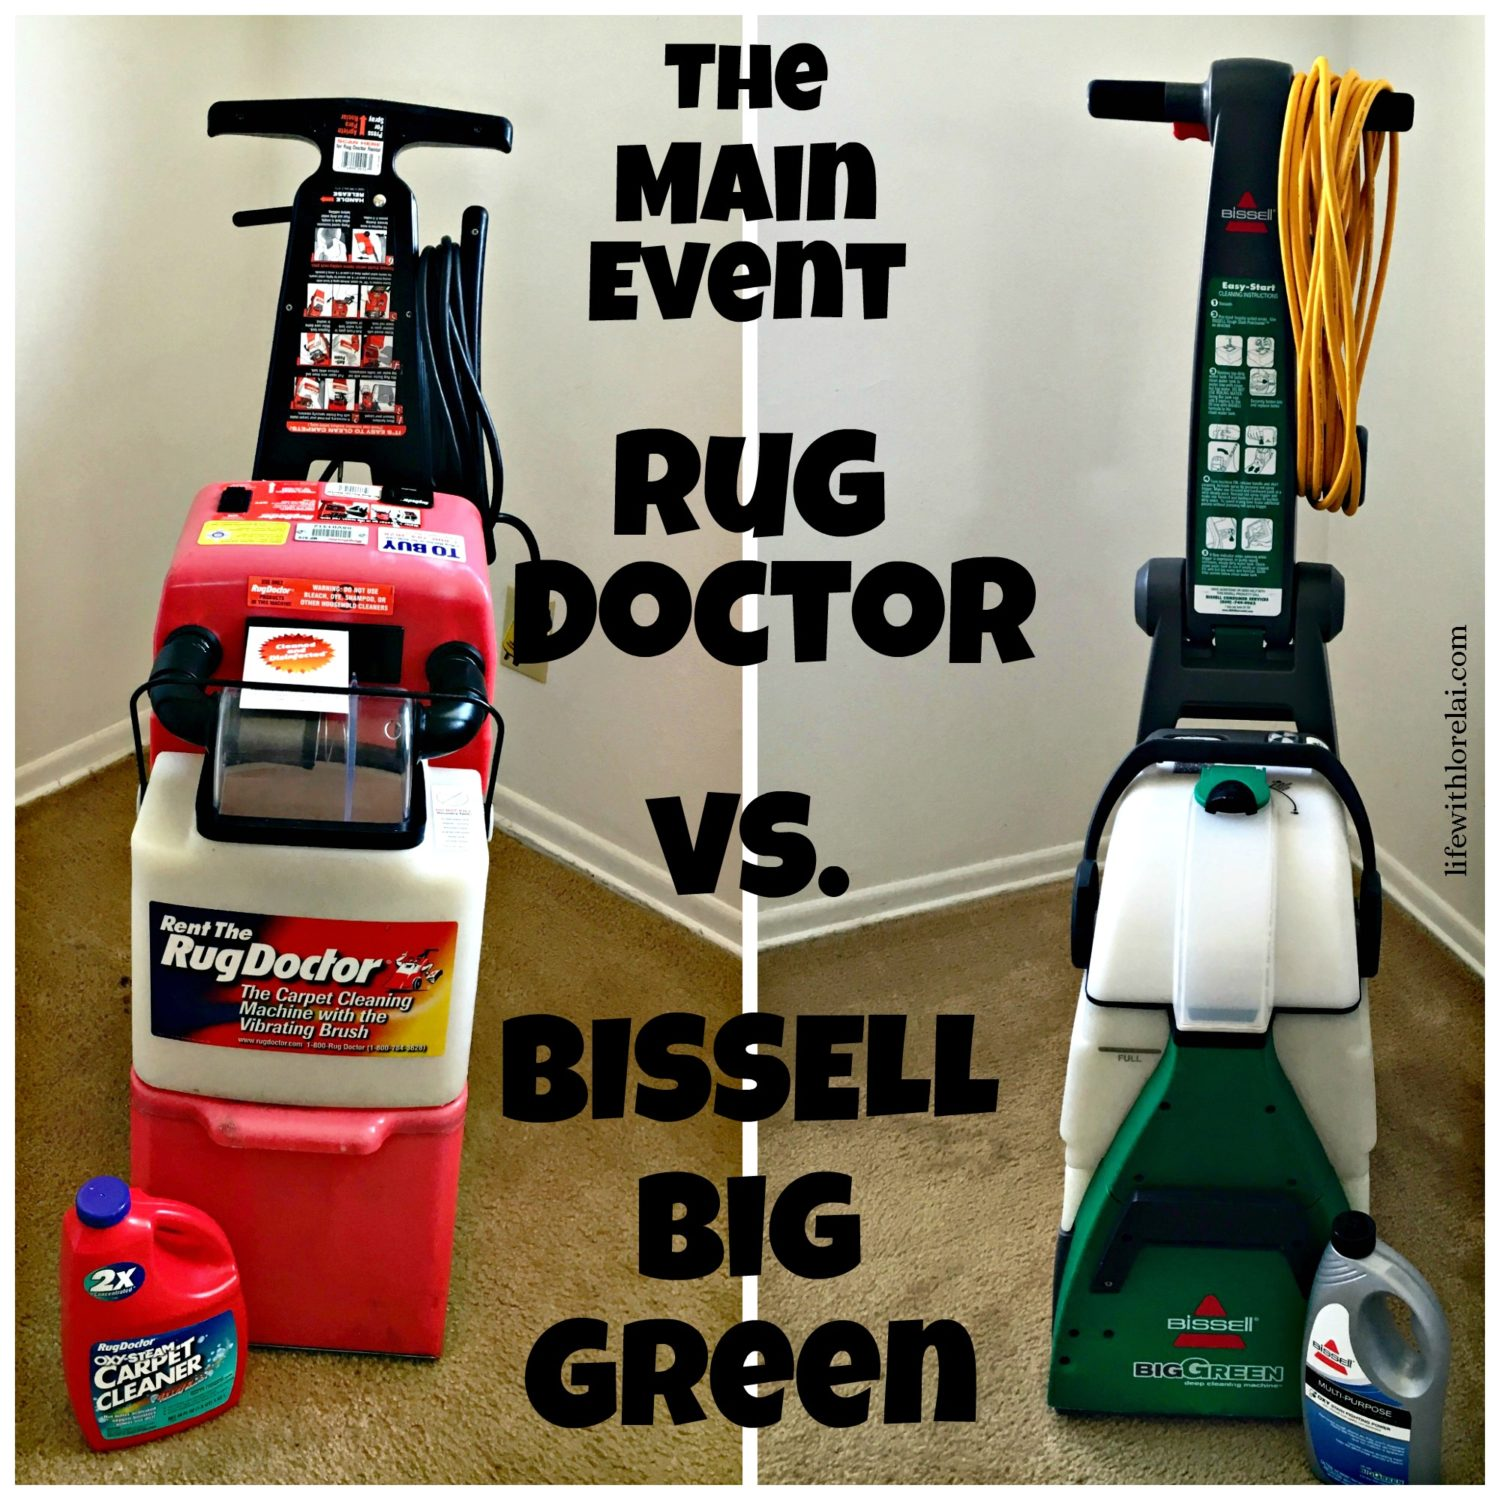 Main-Event-Rug-Doctor-vs-BISSELL-Big-Green-Life-With-Lorelai